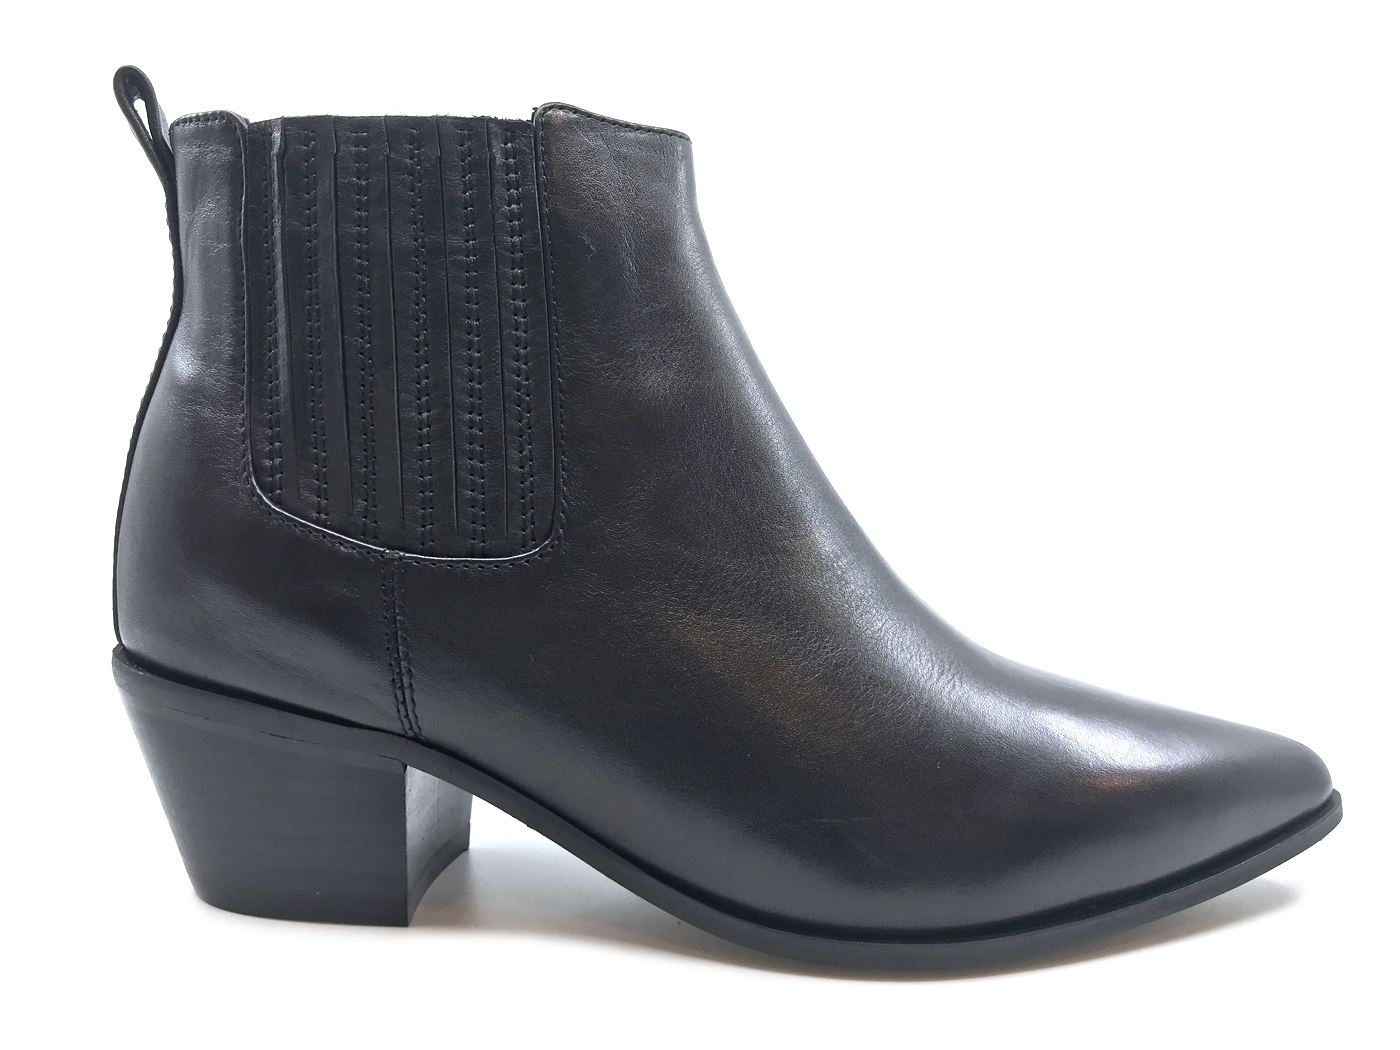 THE SELLER 1113 CALF NERO STIVALETTO DONNA IN PELLE NERA